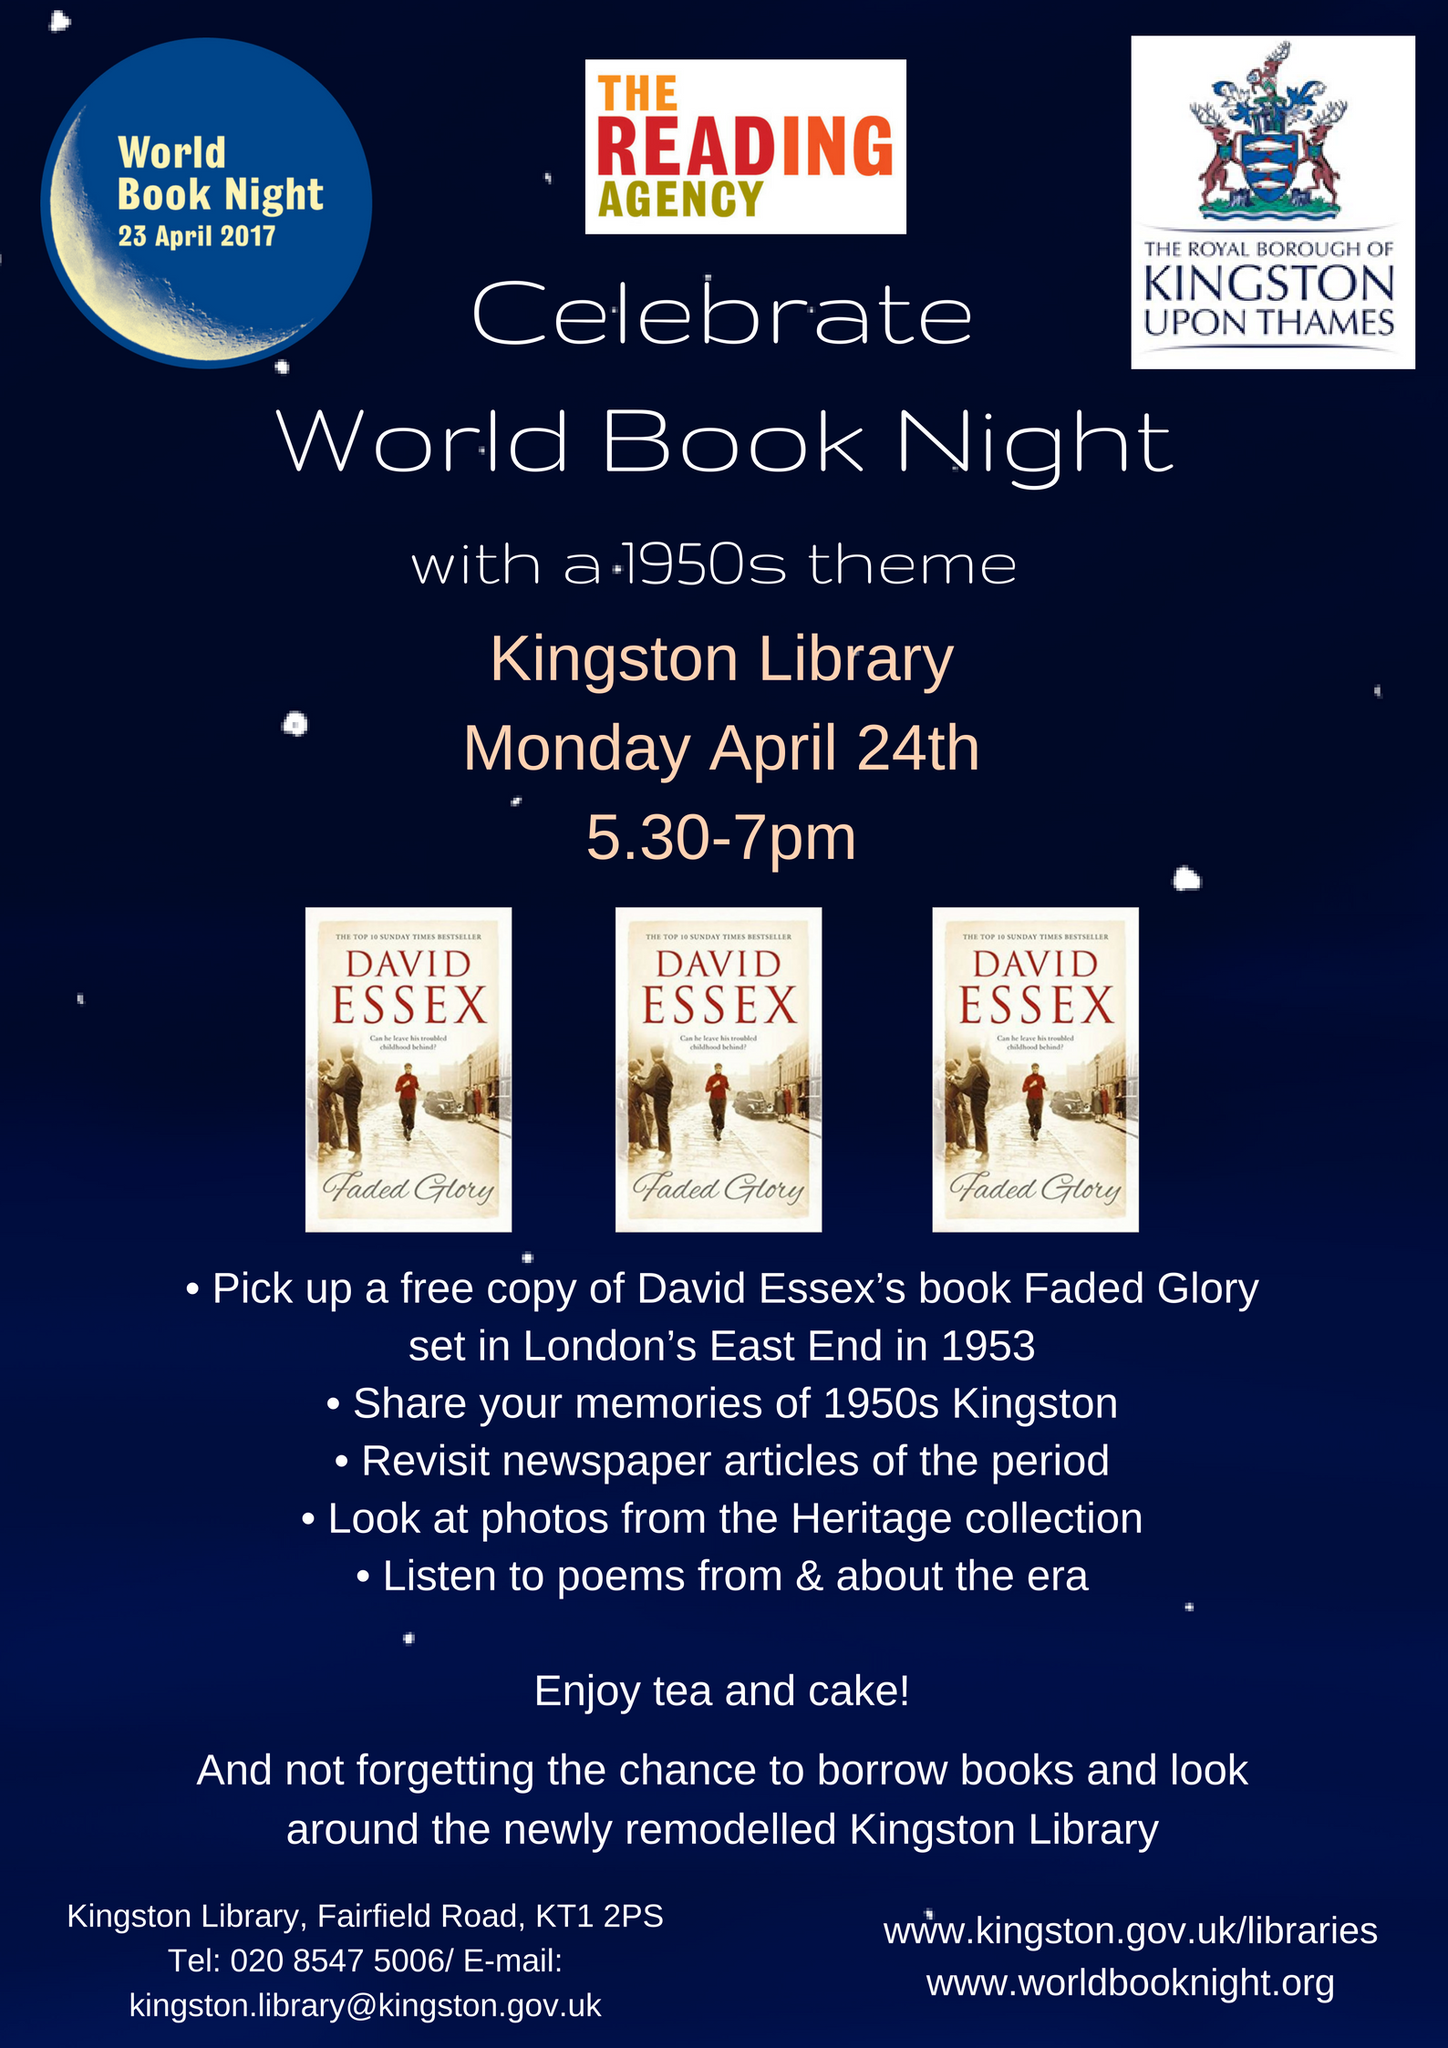 Great event coming up on 24th April  @WorldBookNight @KingstonLibrary @DavidEssexNews .All welcome #WorldBookNight https://t.co/HSOrGi7VCc